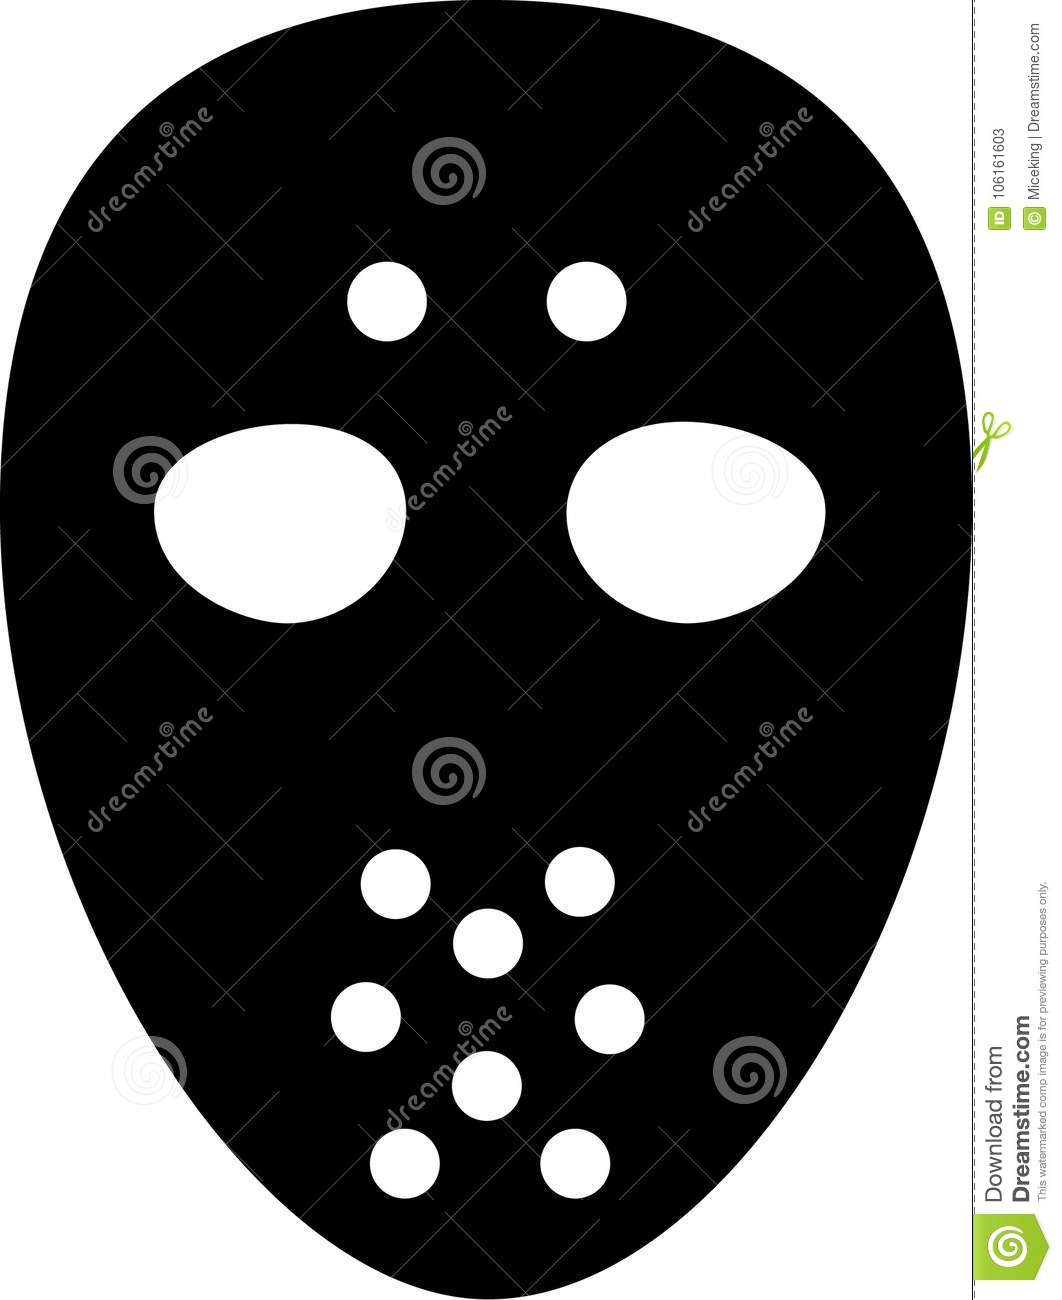 Hockey Goalie Mask Stock Vector Illustration Of Icon 106161603